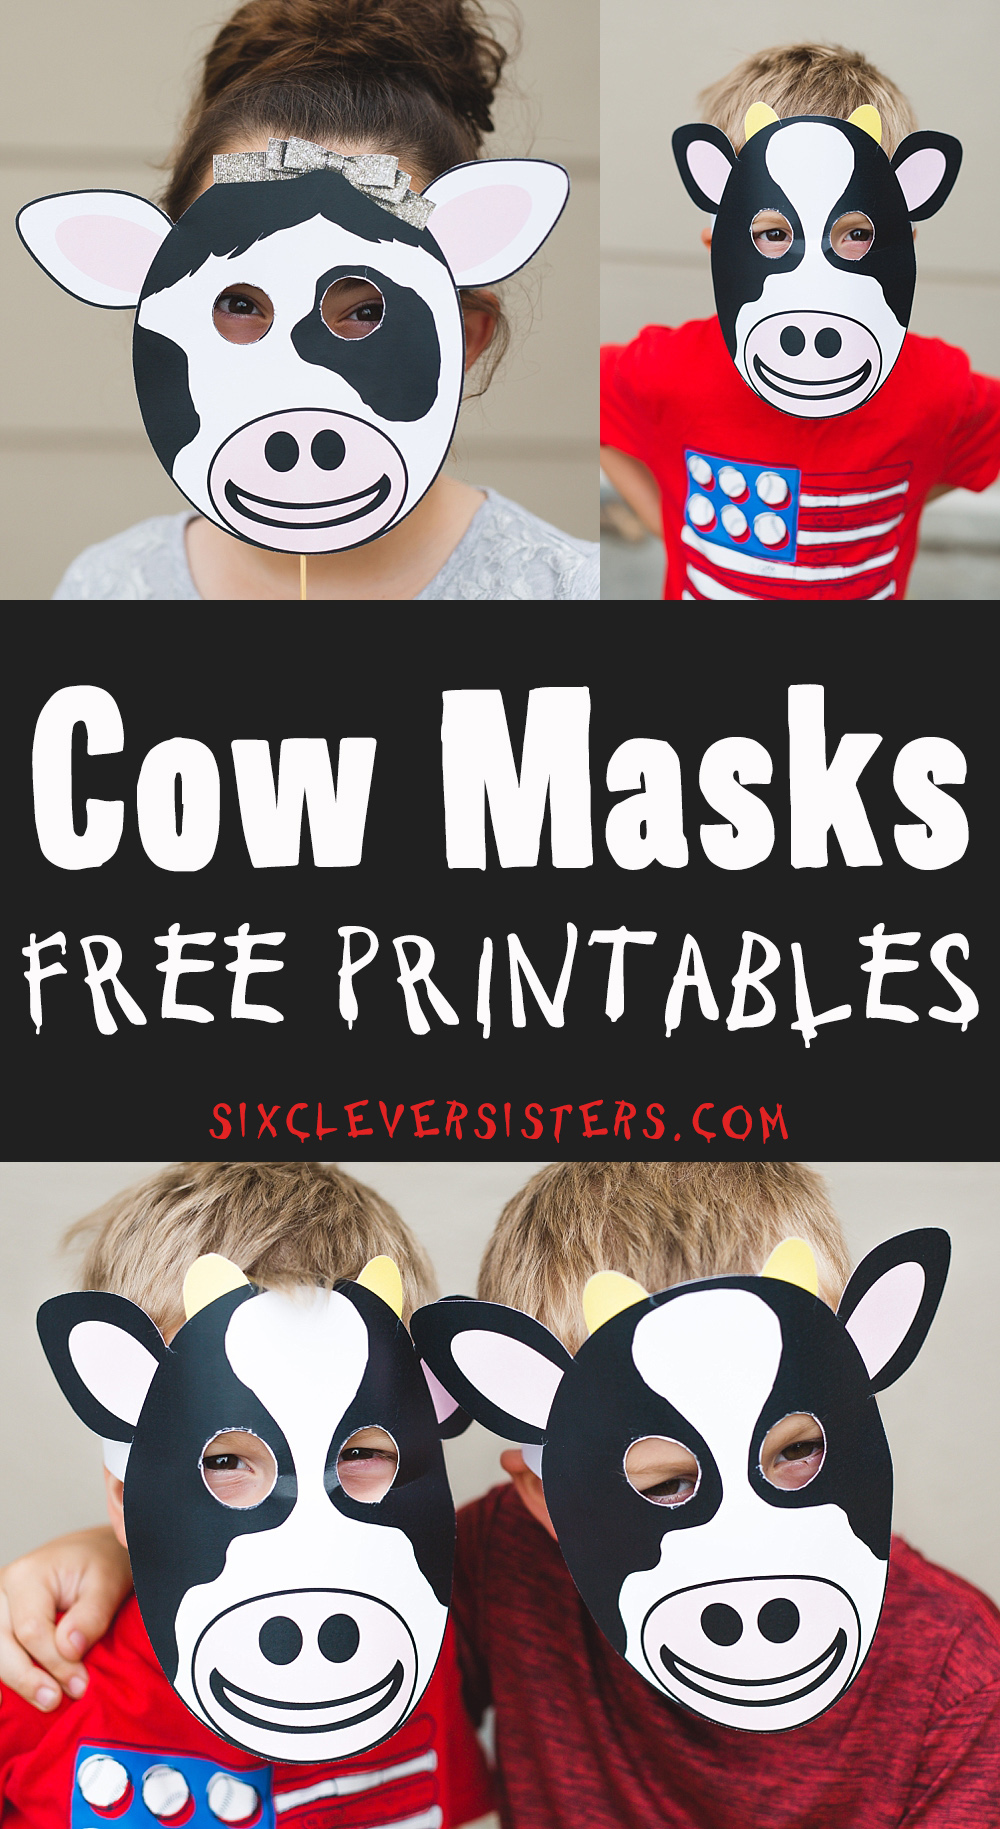 photograph regarding Printable Cow Mask referred to as Chick Fil A Cow Mask - 6 Sensible Sisters